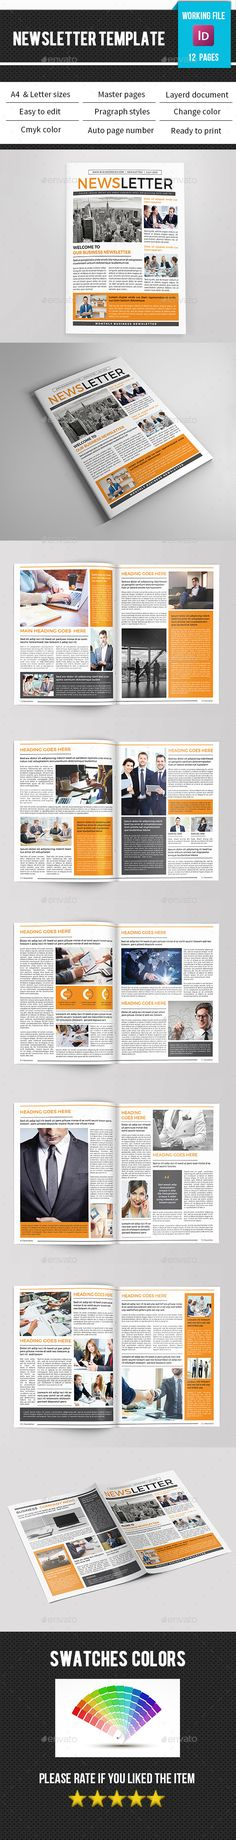 Business Newsletter Design Template V11 - Newsletters Print Template InDesign INDD. Download here: https://graphicriver.net/item/business-newsletterv11/17026414?s_rank=176&ref=yinkira